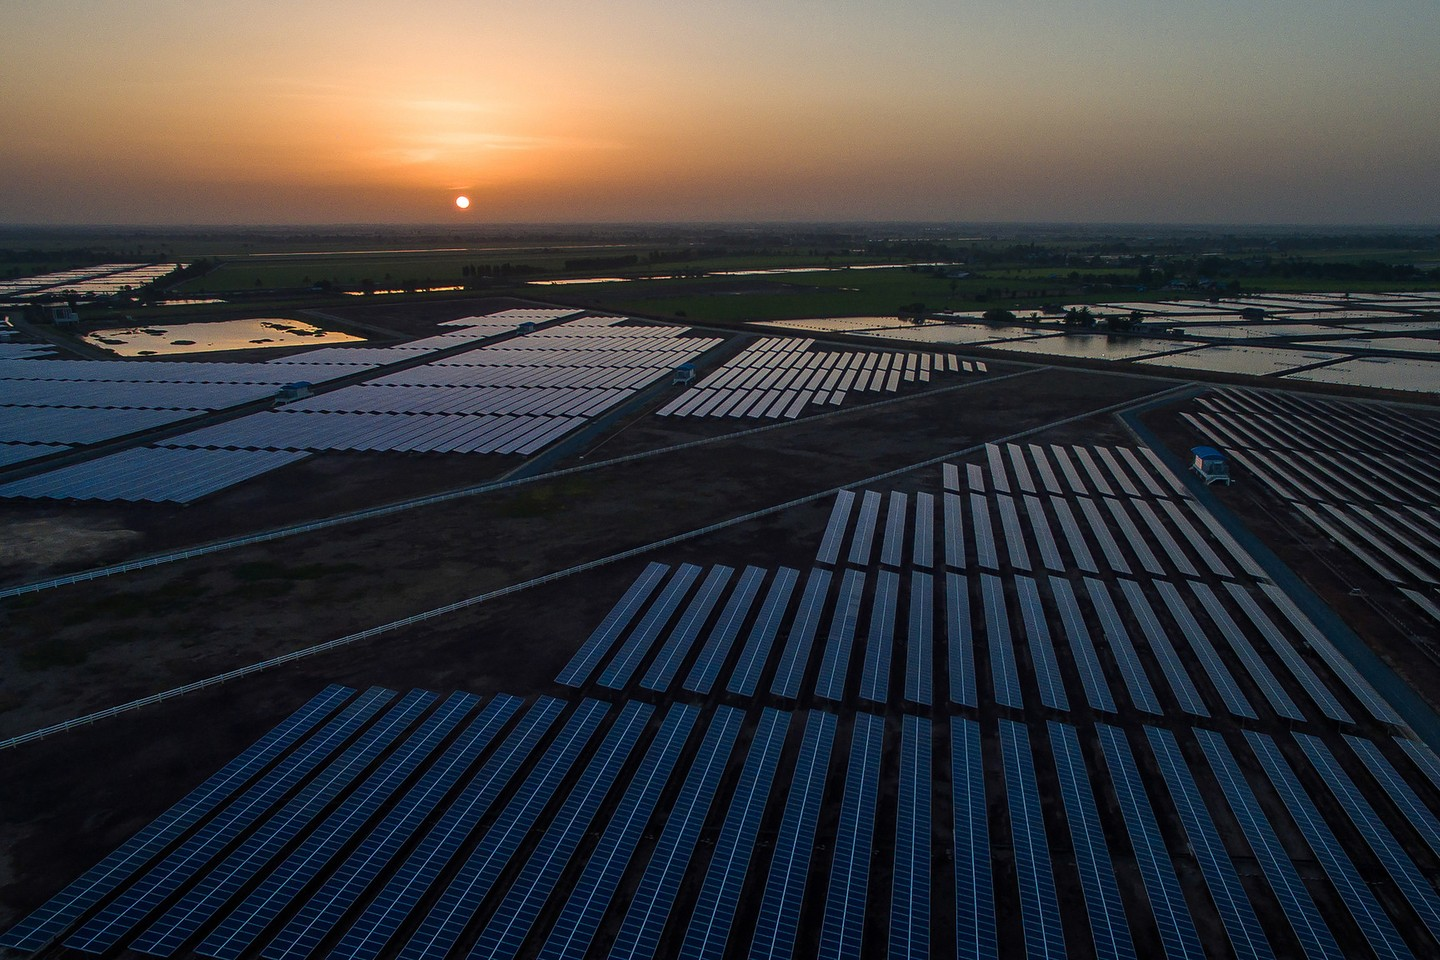 Solar Farm in Thailand (Asian Development Bank image, CC BY 2.0)